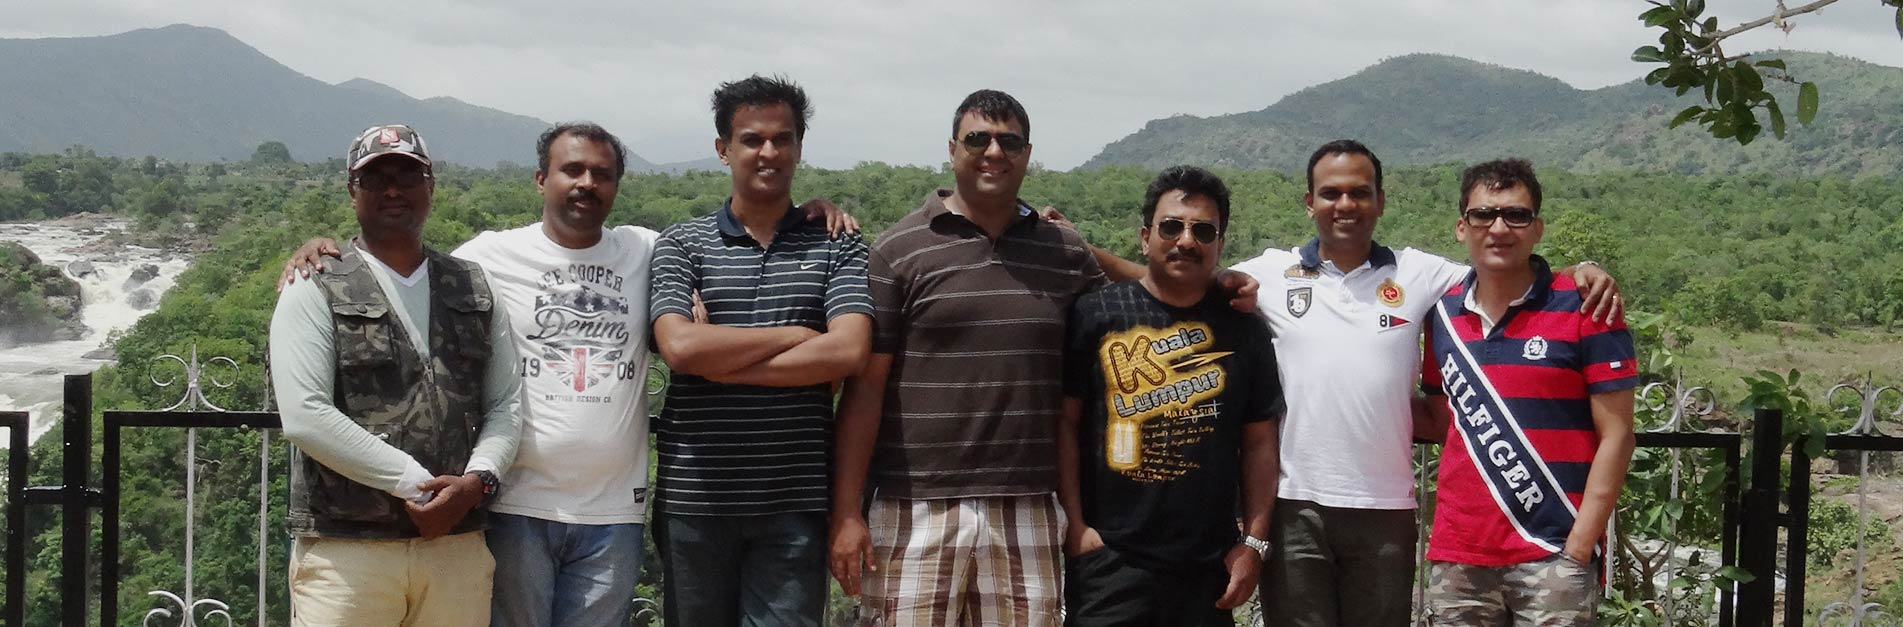 Corporate team outing resorts near Bangalore